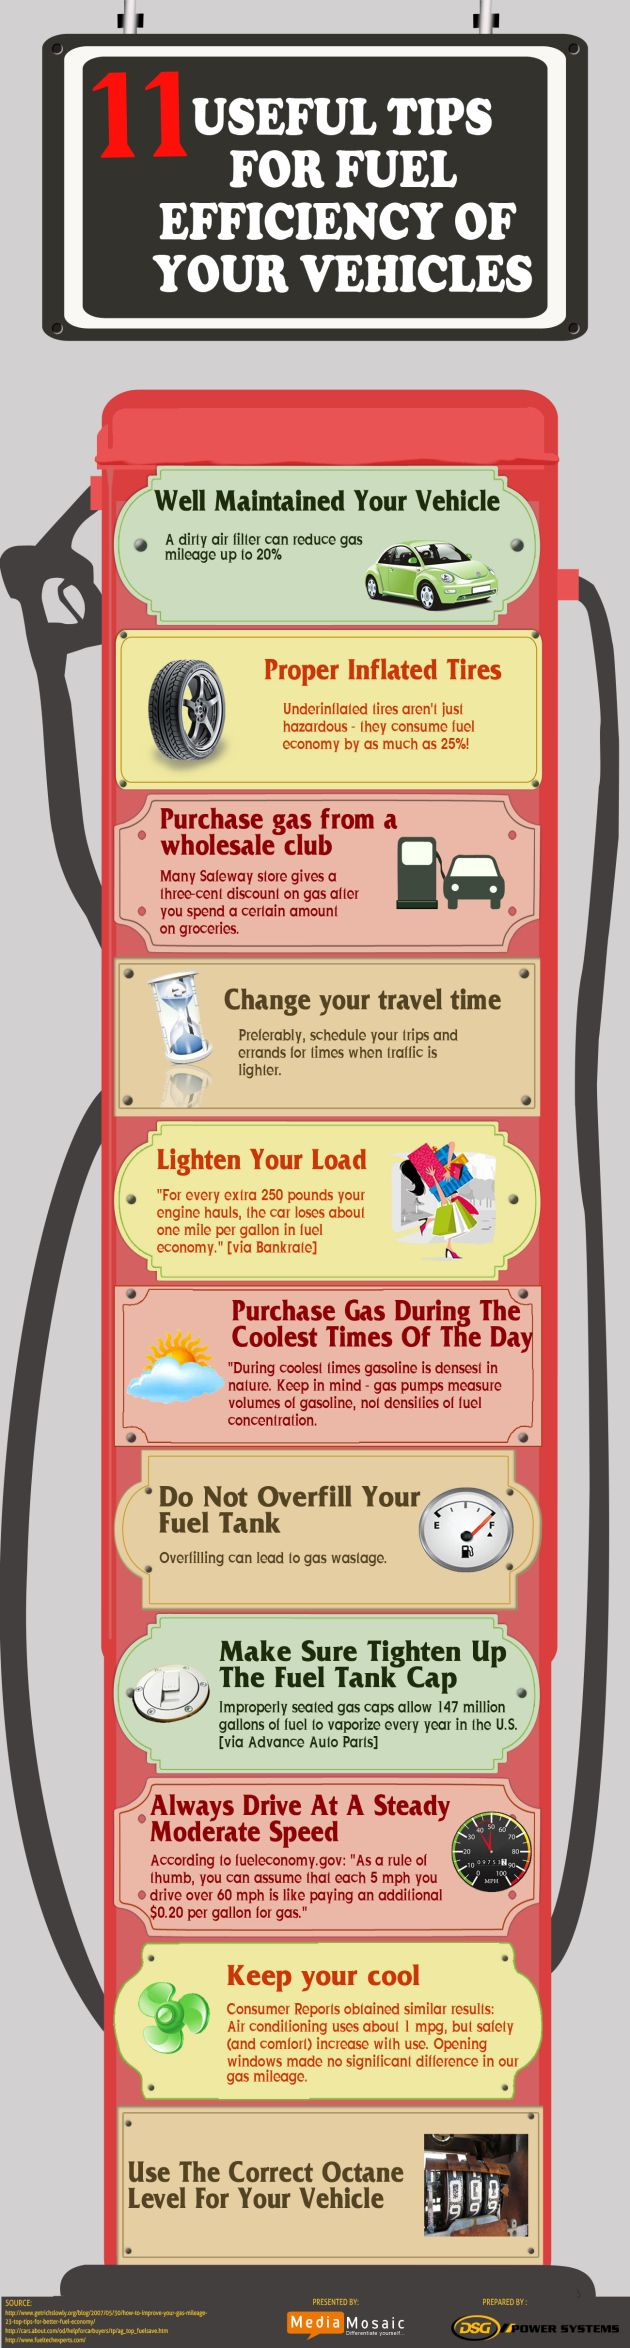 11 Useful Tips for Fuel Efficiency of your Vehicals (infographic)